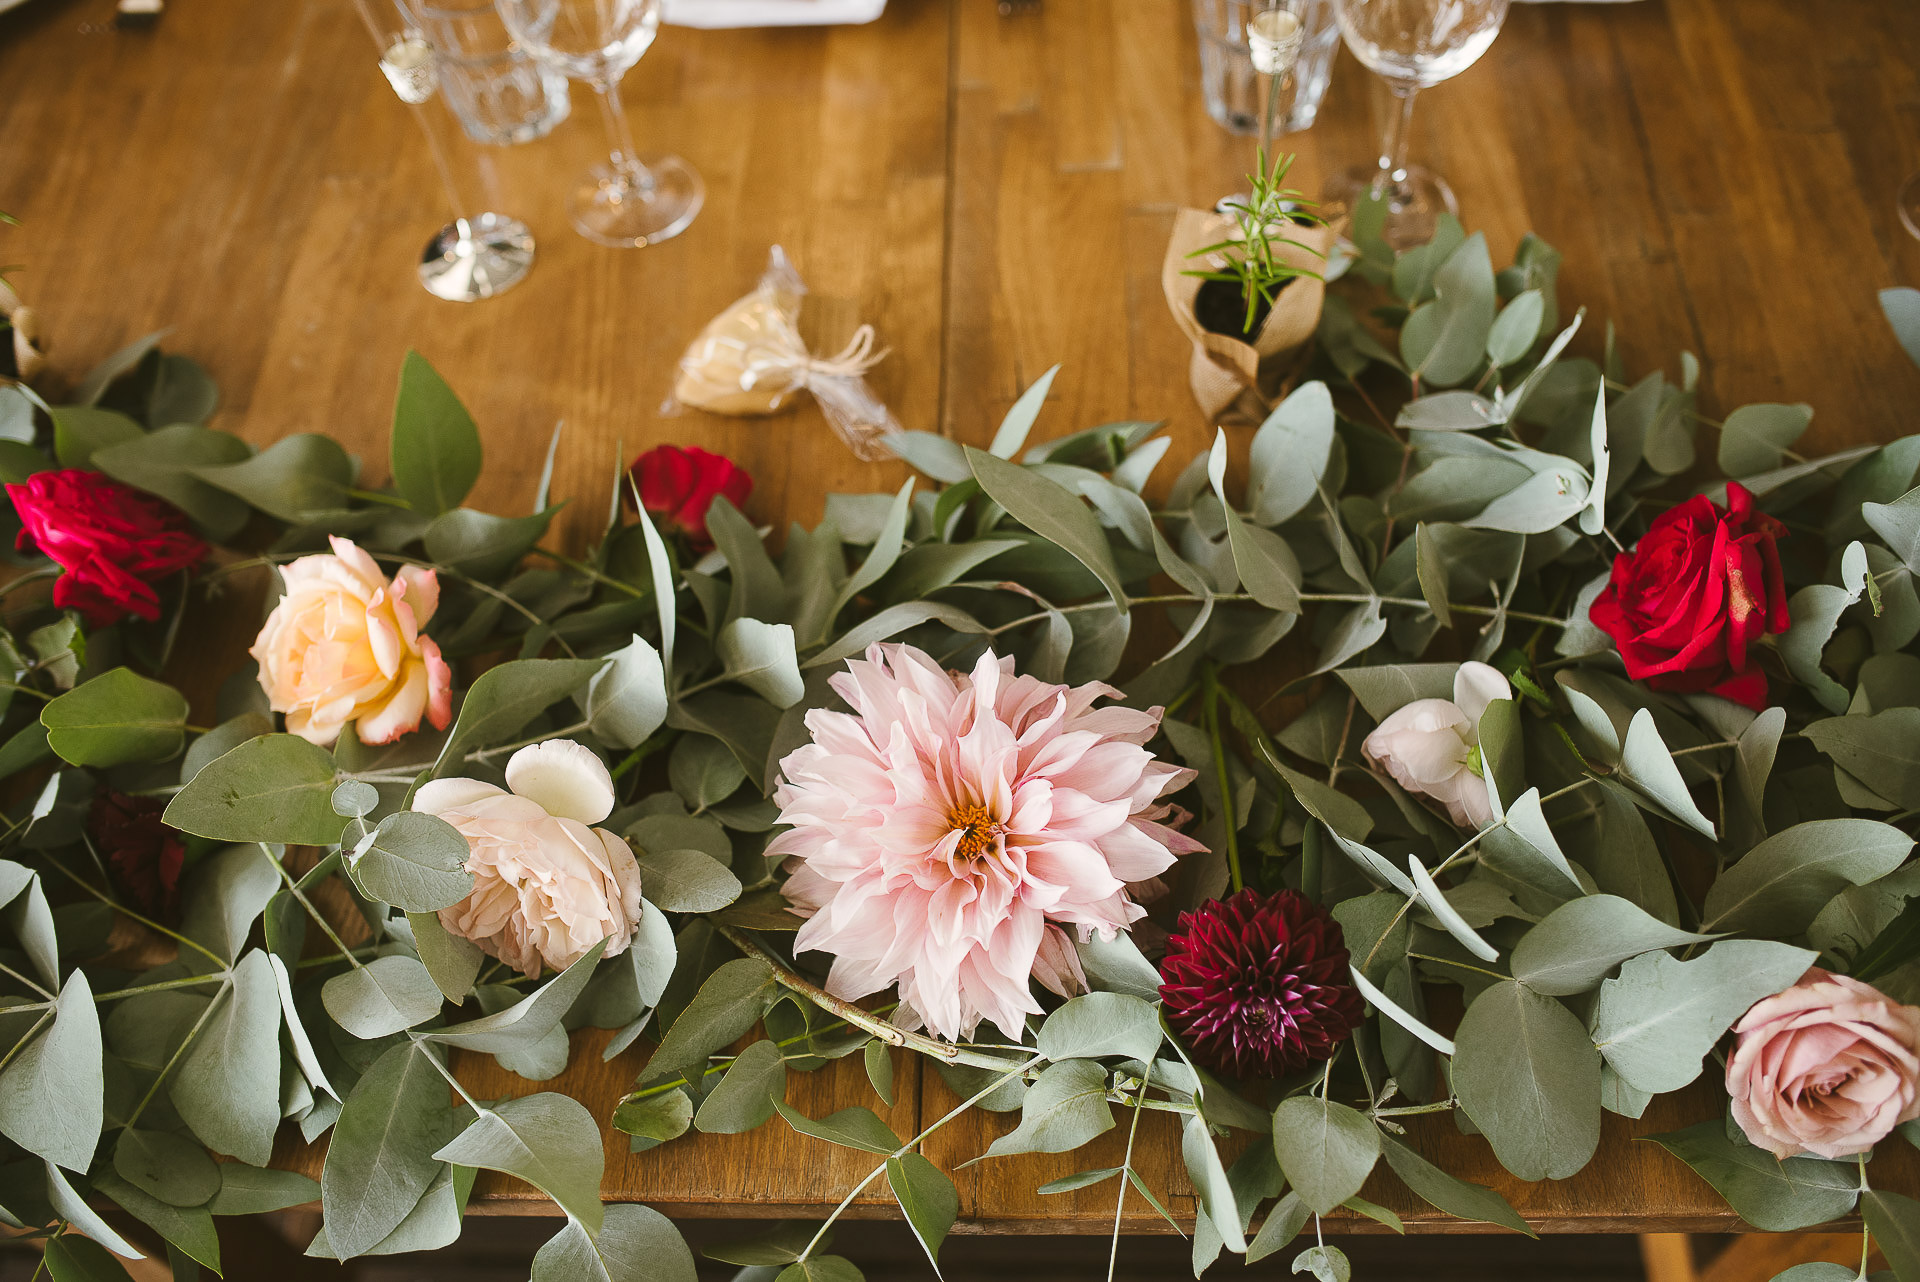 pastel flowers and eucalyptus leaves decorating a wedding table